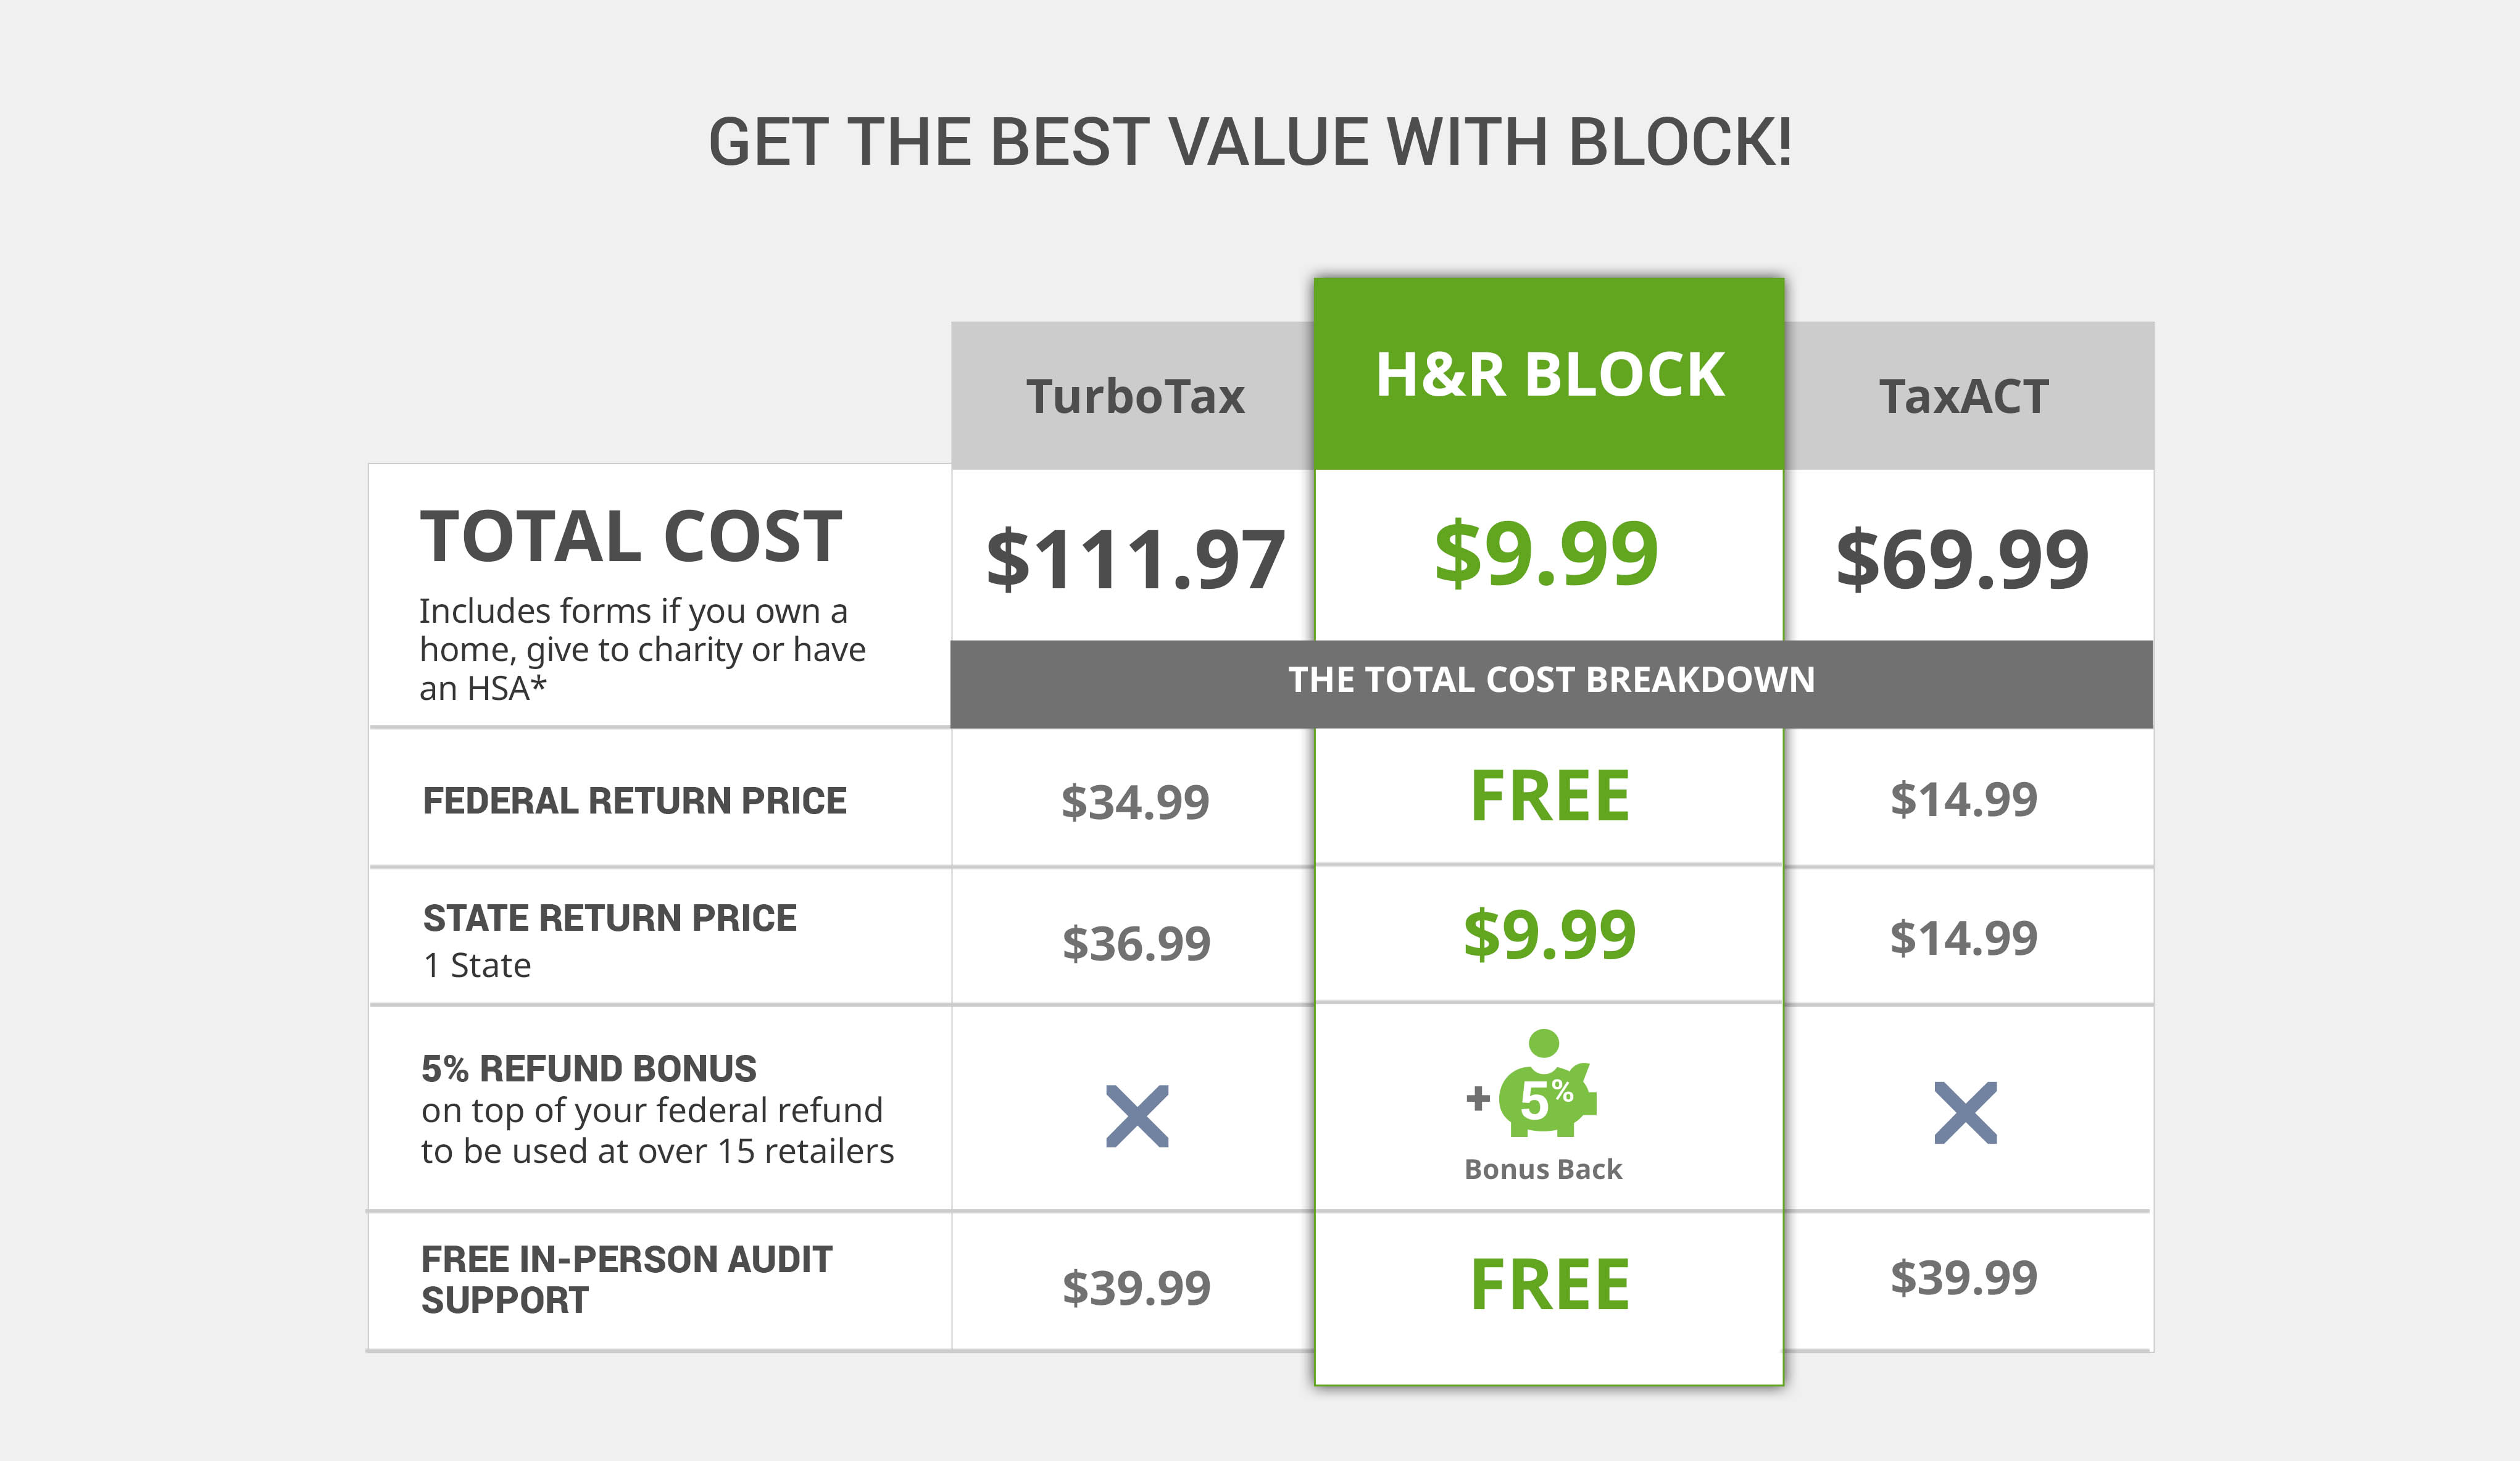 marketing mix h r block Marketing mix - h&r block - marketing mix - h&r block marketing mix as we all know, marketing is a necessary part of our daily life not only are products and services marketed, but we market ourselves as part of everyday business.